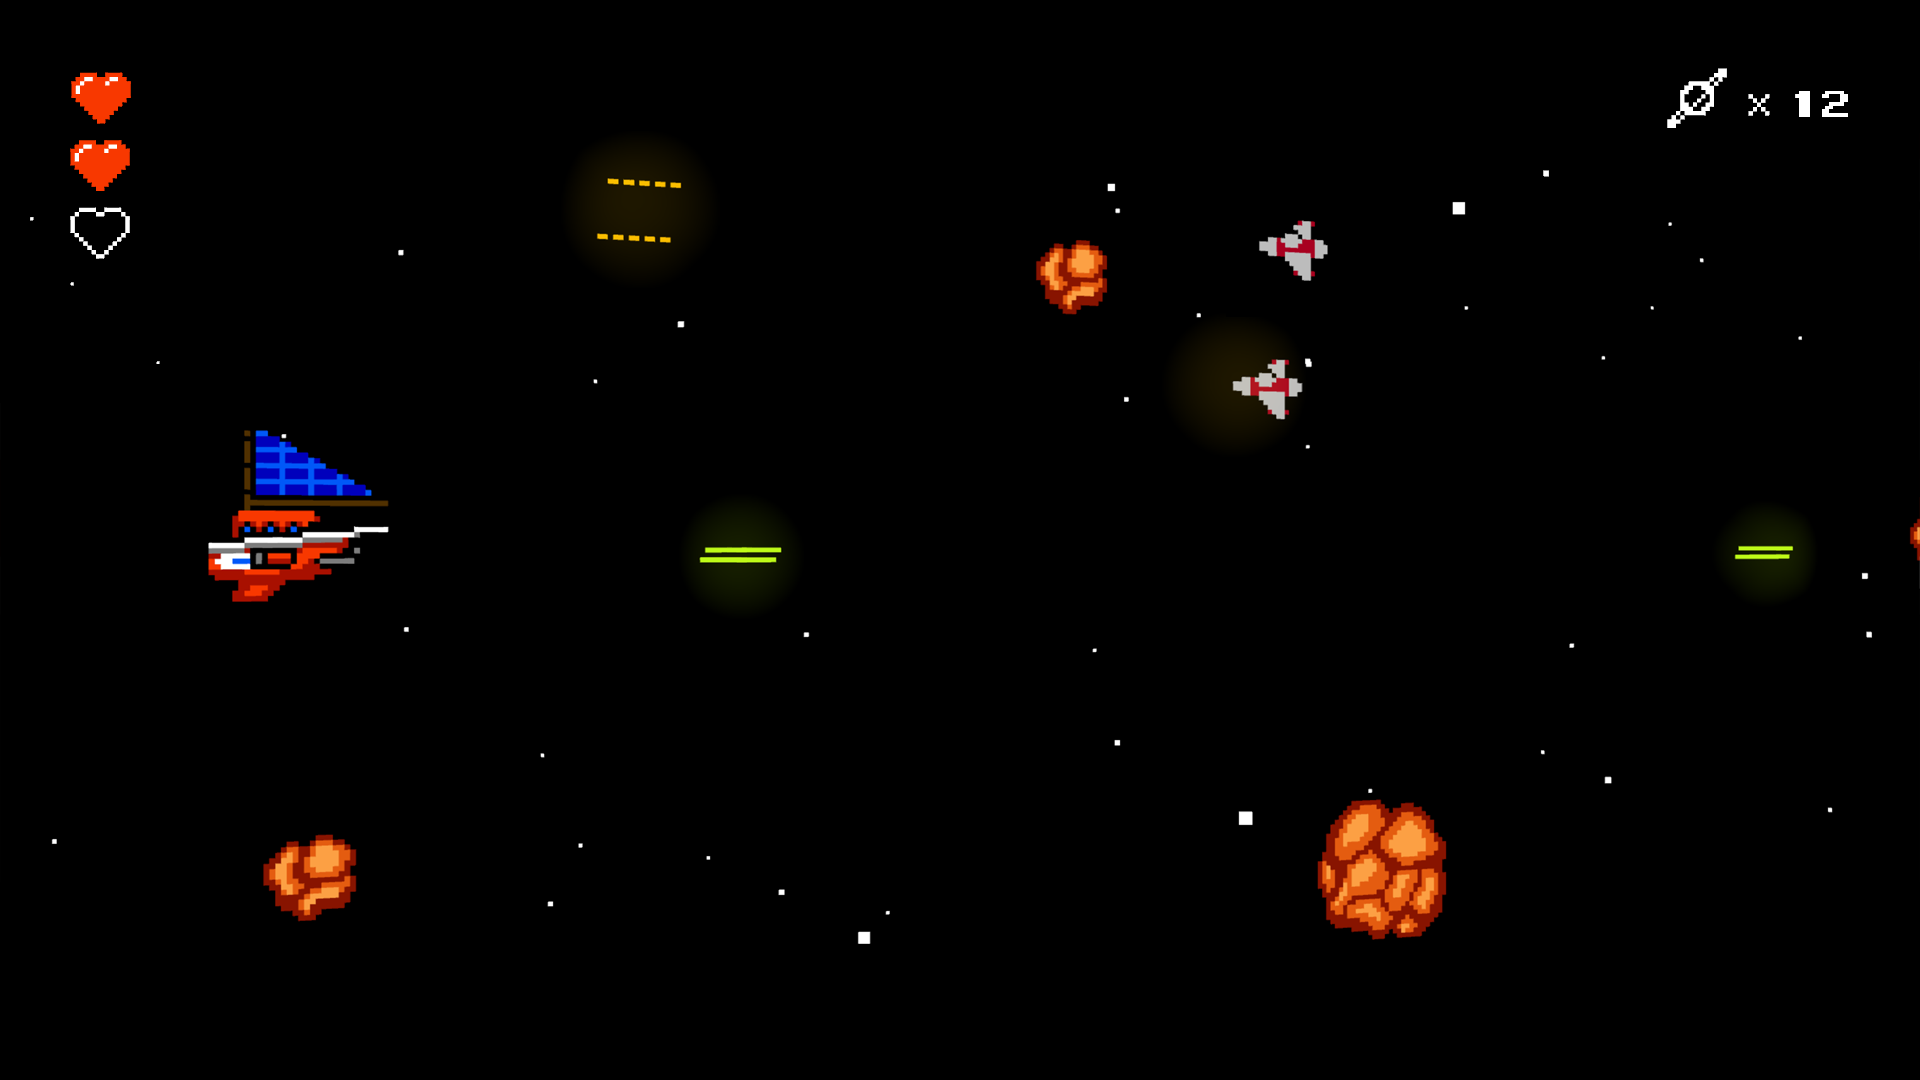 Epic Space Battle Screenshot